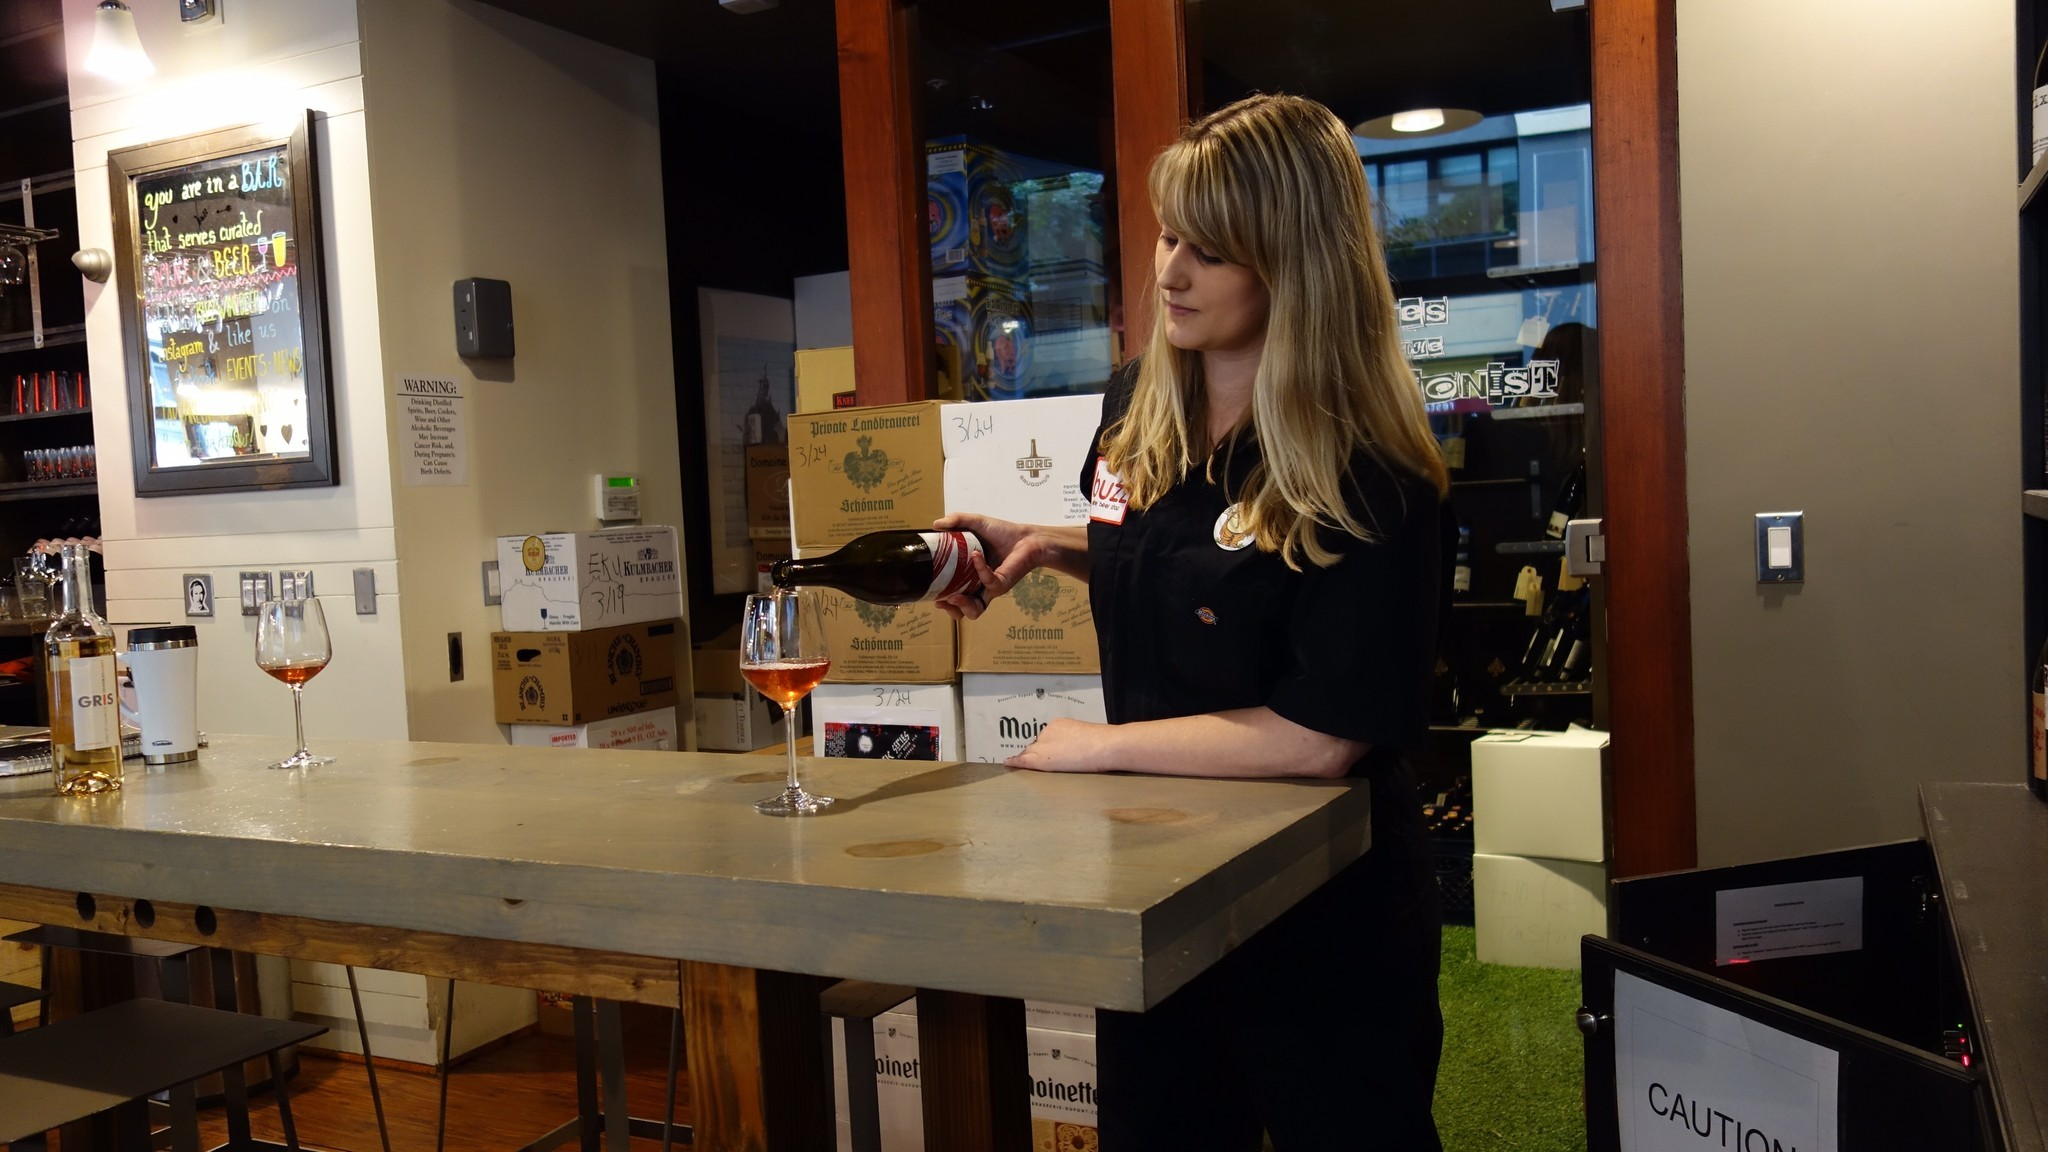 Downtown wine buyer's tips for getting buzzed, at Buzz